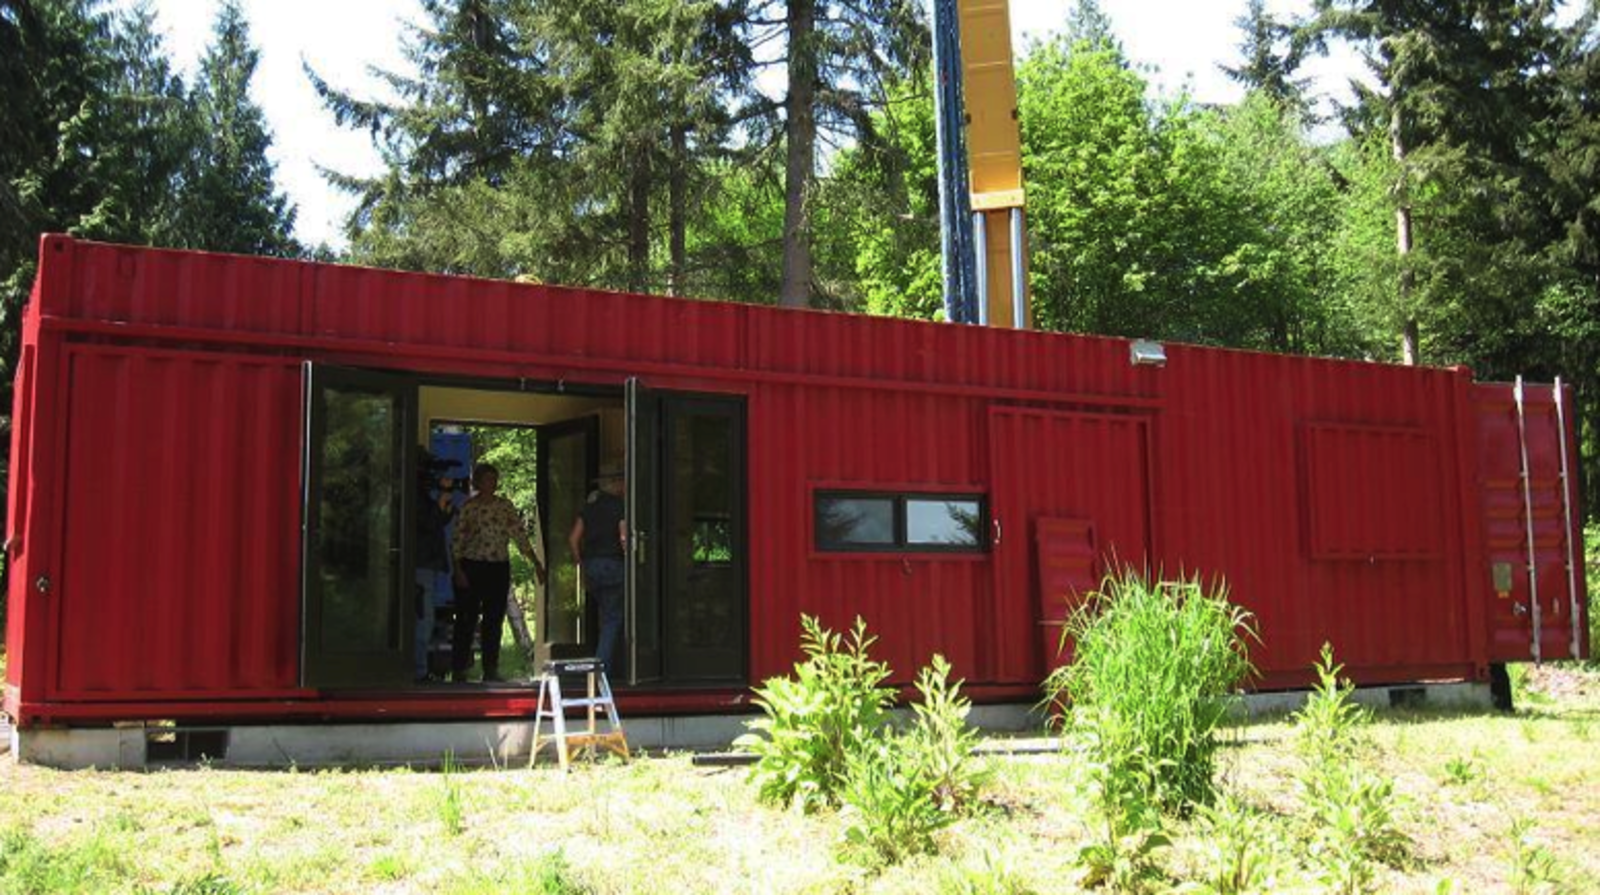 Repurposed shipping containers serve as the primary materials for the houses and working spaces designed by ShelterKraft. The company's designs focus primarily on disaster relief projects, drawing from existing steel frames and skins in order to reduce the use of new materials. Their buildings range from small cargo cottages of 160-square-feet to 700-square-foot warehouses for industrial facilities. Athough they come with electric power, heat and plumbing, they generally require a pre-existing concrete foundation and a local contractor to ensure a smooth, safe installation.  Photo 10 of 10 in 8 Companies That Are Revolutionizing Kit Homes